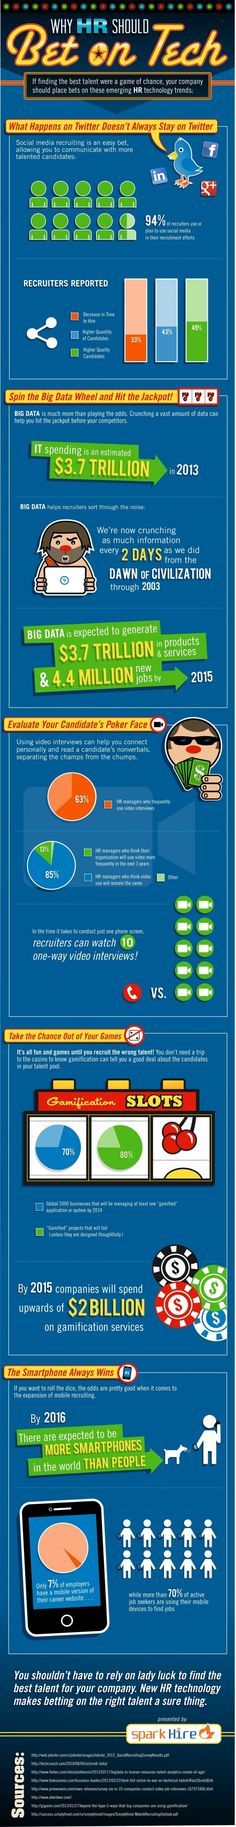 New Technology And HR [INFOGRAPHIC]